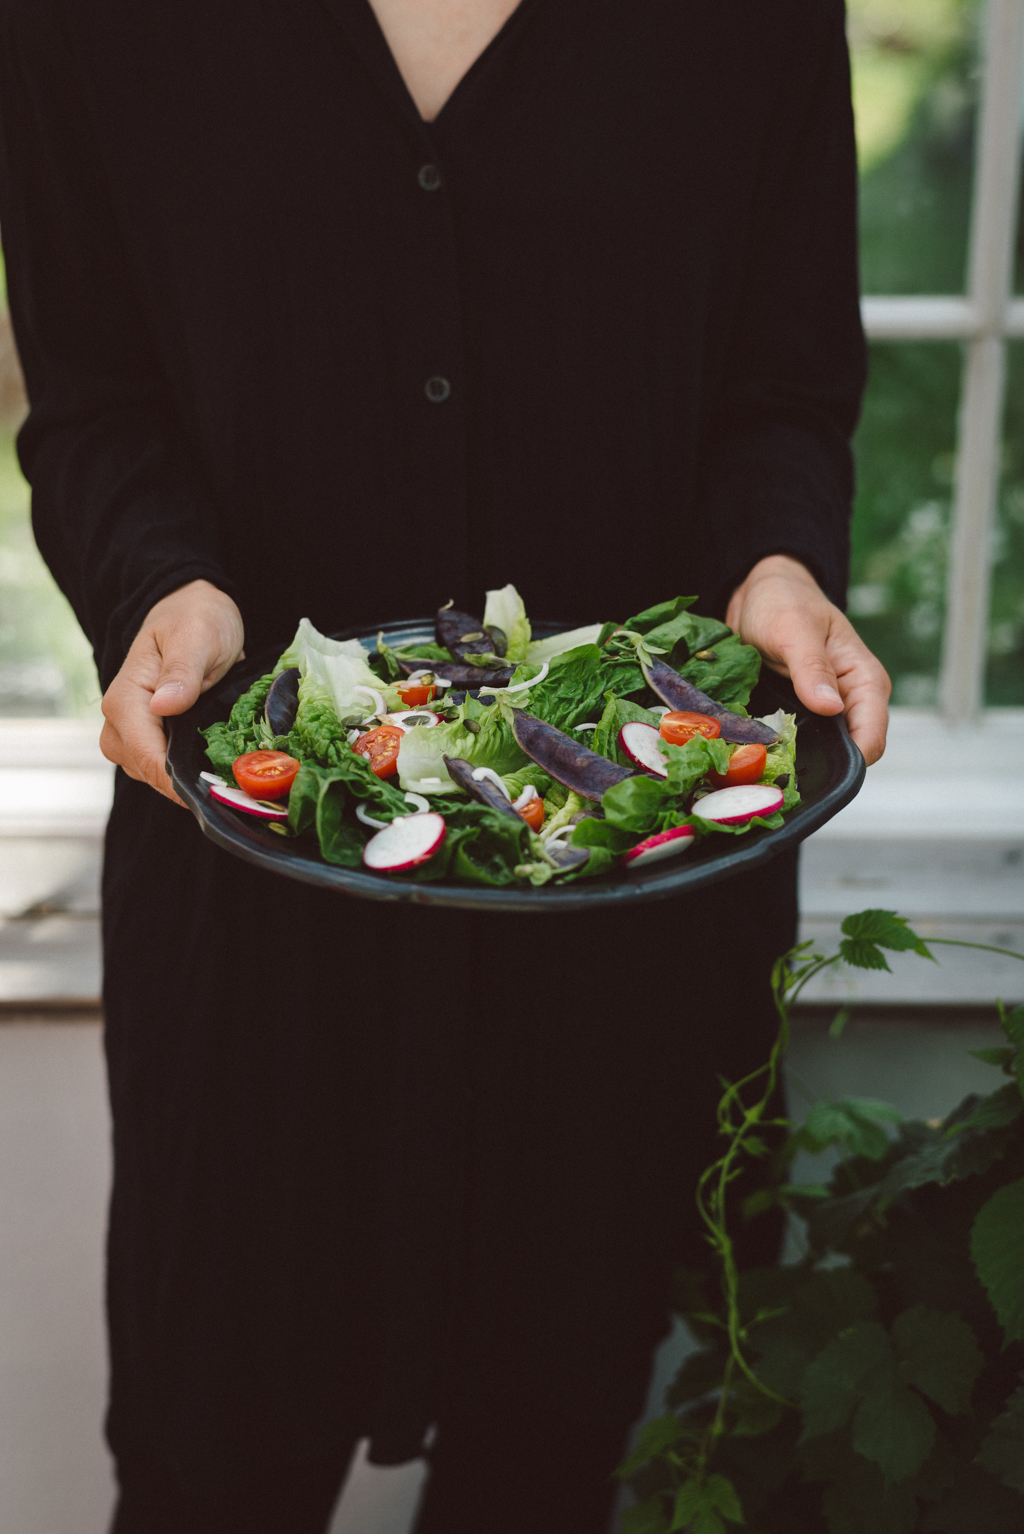 Summer salad by Babes in Boyland